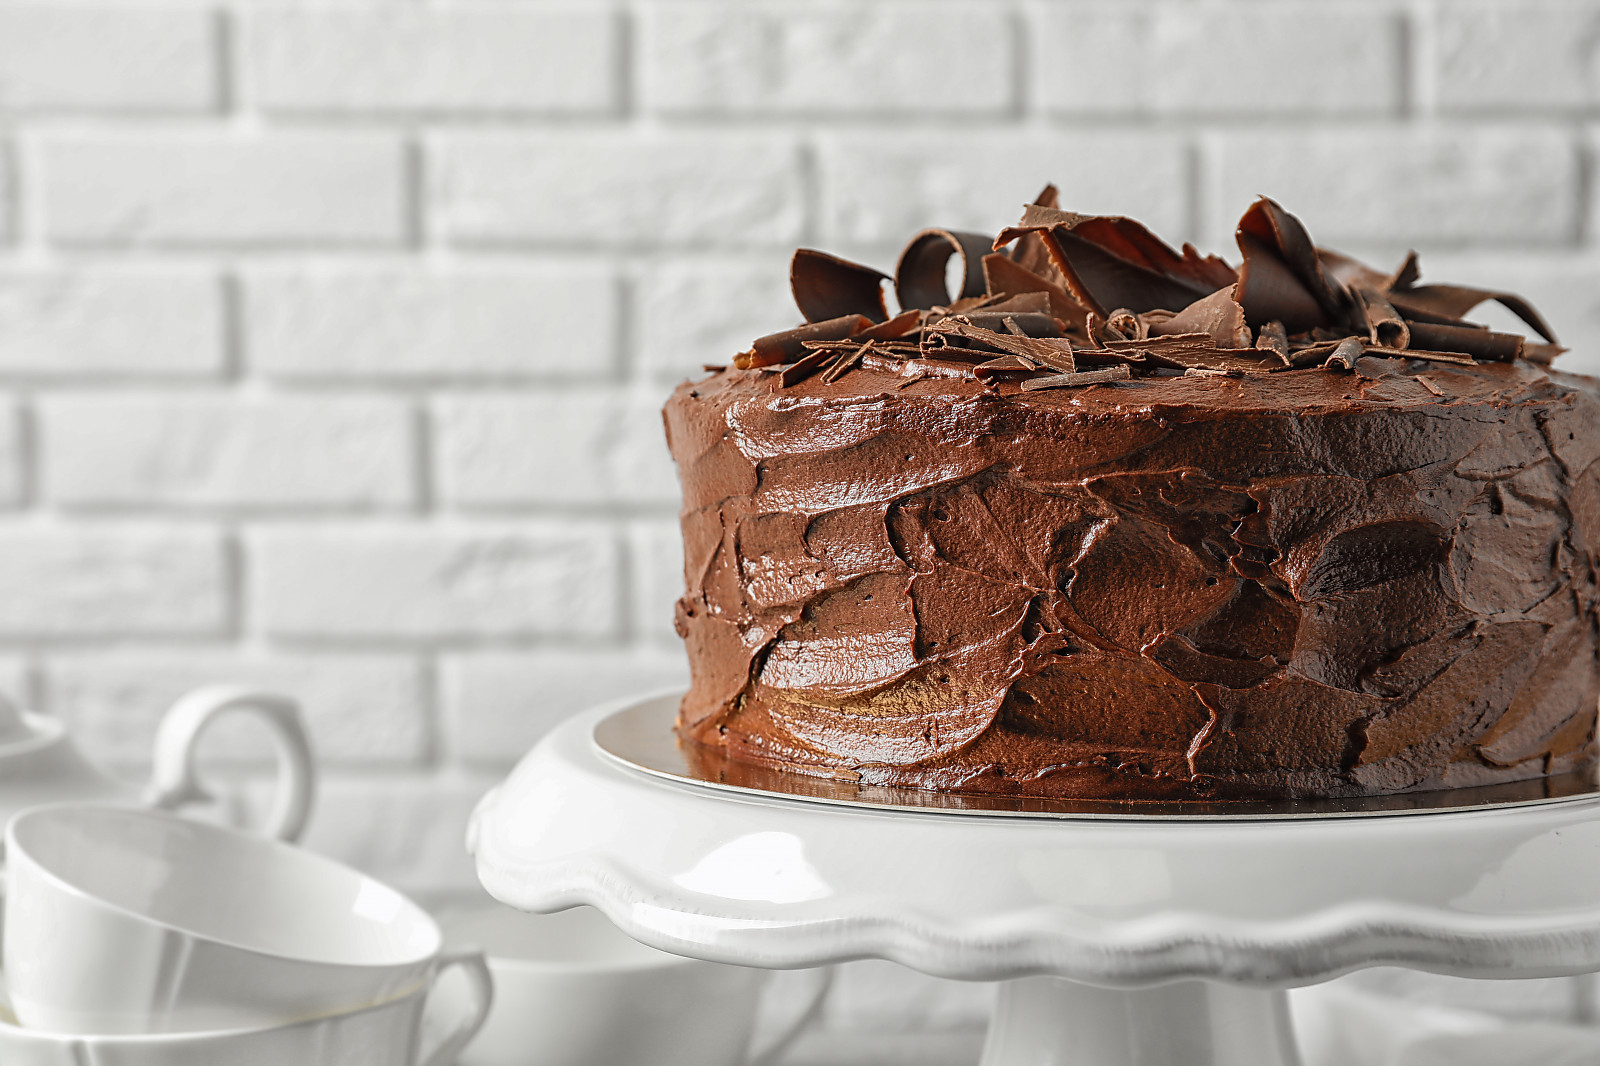 Basic Preparation Instructions for Eggless Rich Chocolate Cake Mix